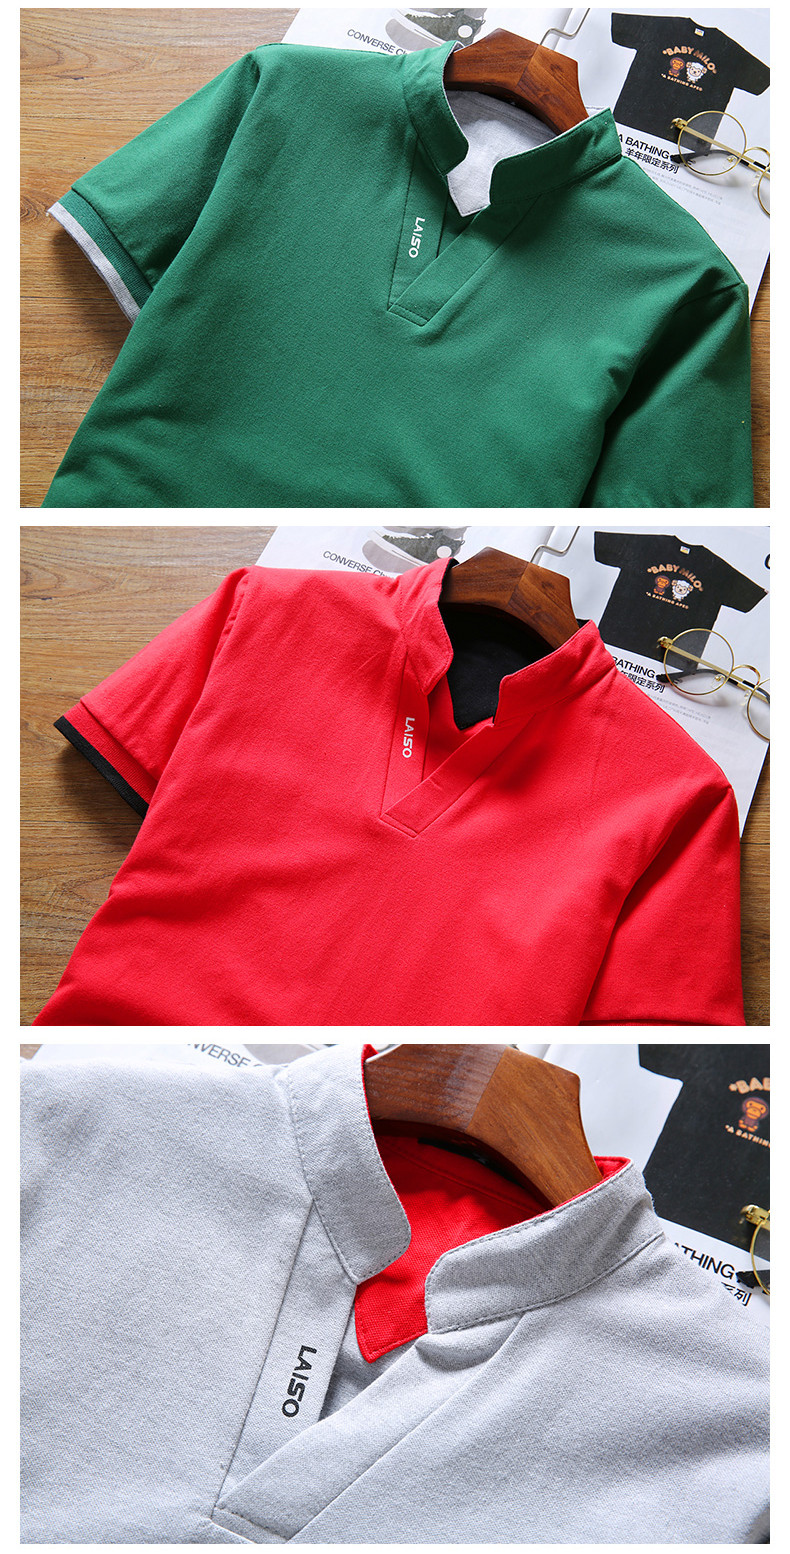 Cotton Men Polo Shirt Tops Fashion Brand Plus Size Short Sleeve Black White Polo Shirt Homme Camisa 39